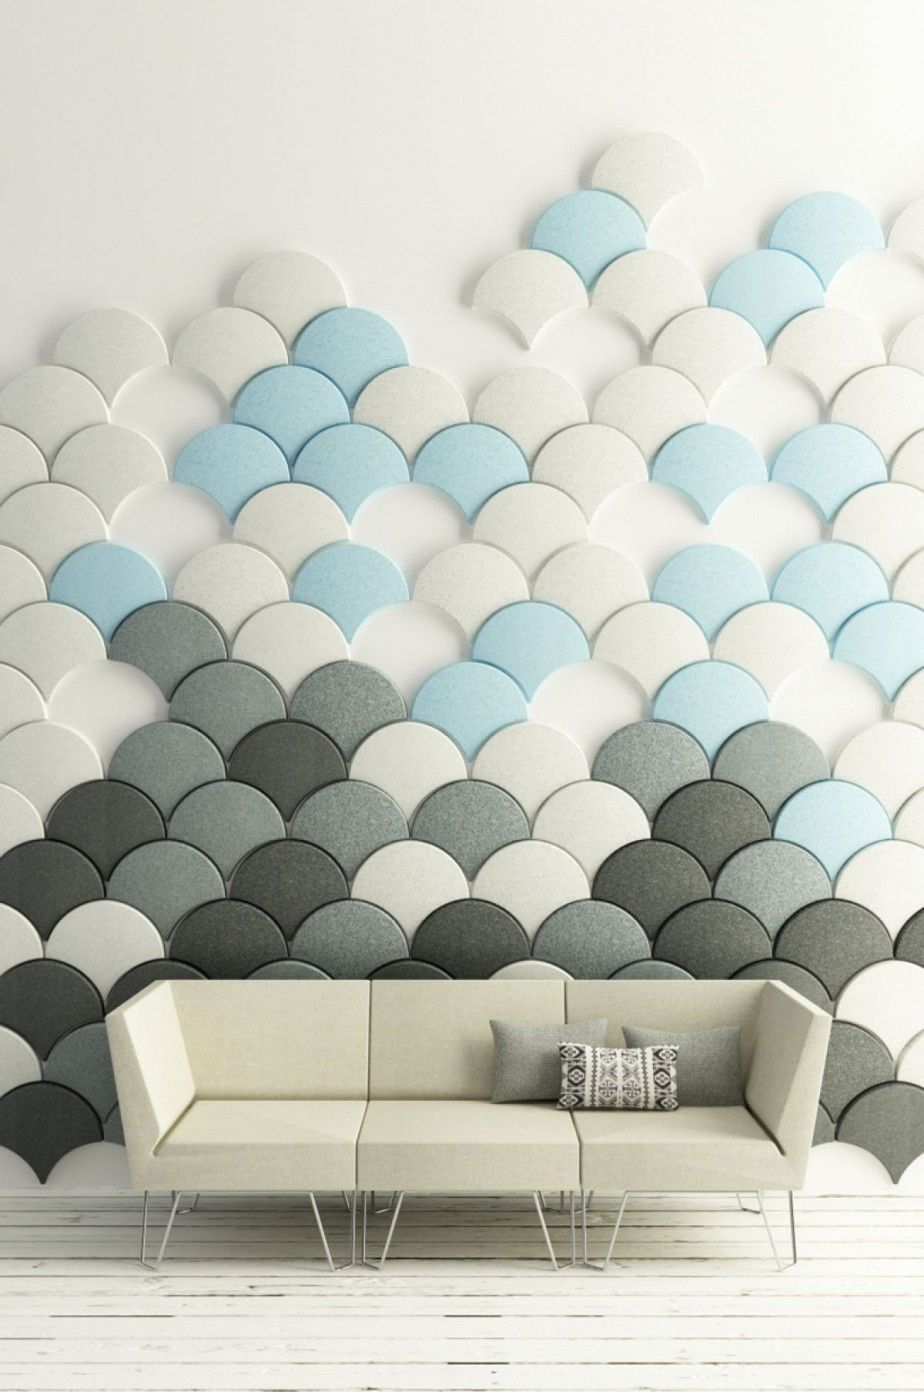 Wonderful Round Shaped Modular Arts Wall Panels For Living Room ...